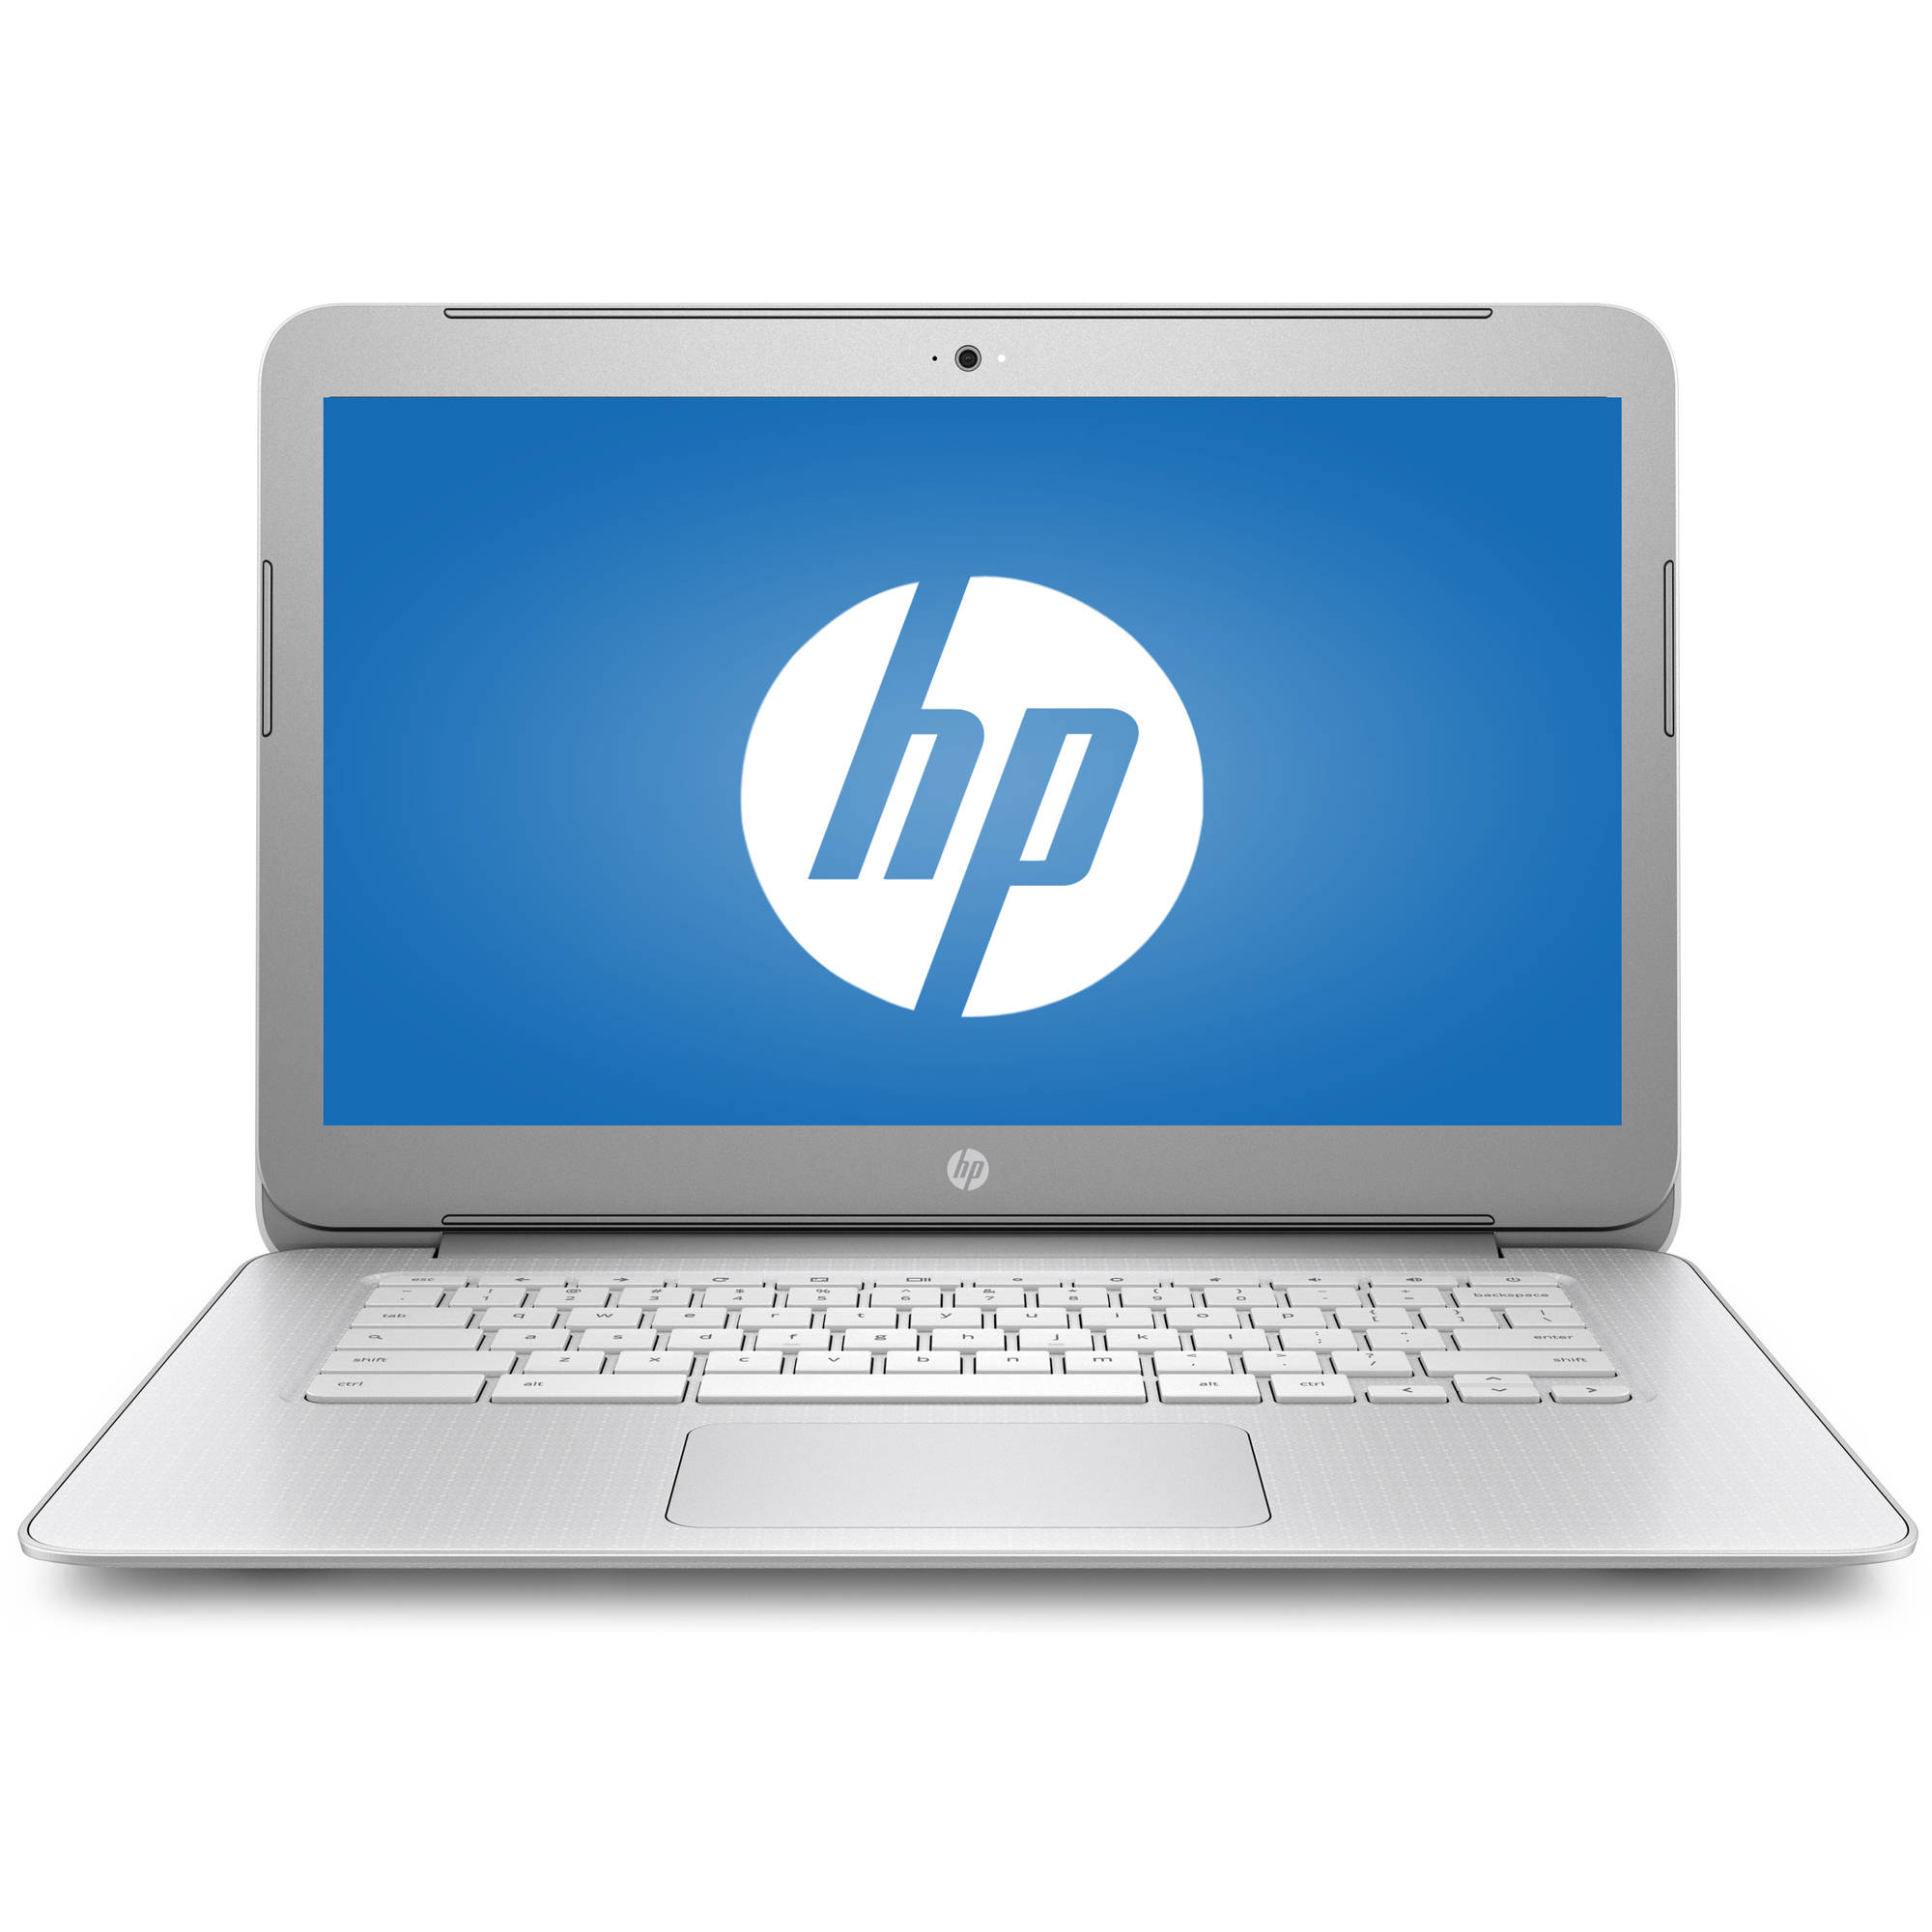 "HP 14-ak040wm 14"" Chromebook, Chrome, Full HD IPS Display, Intel Celeron N2940 Processor, 4GB RAM, 16GB eMMC Drive"